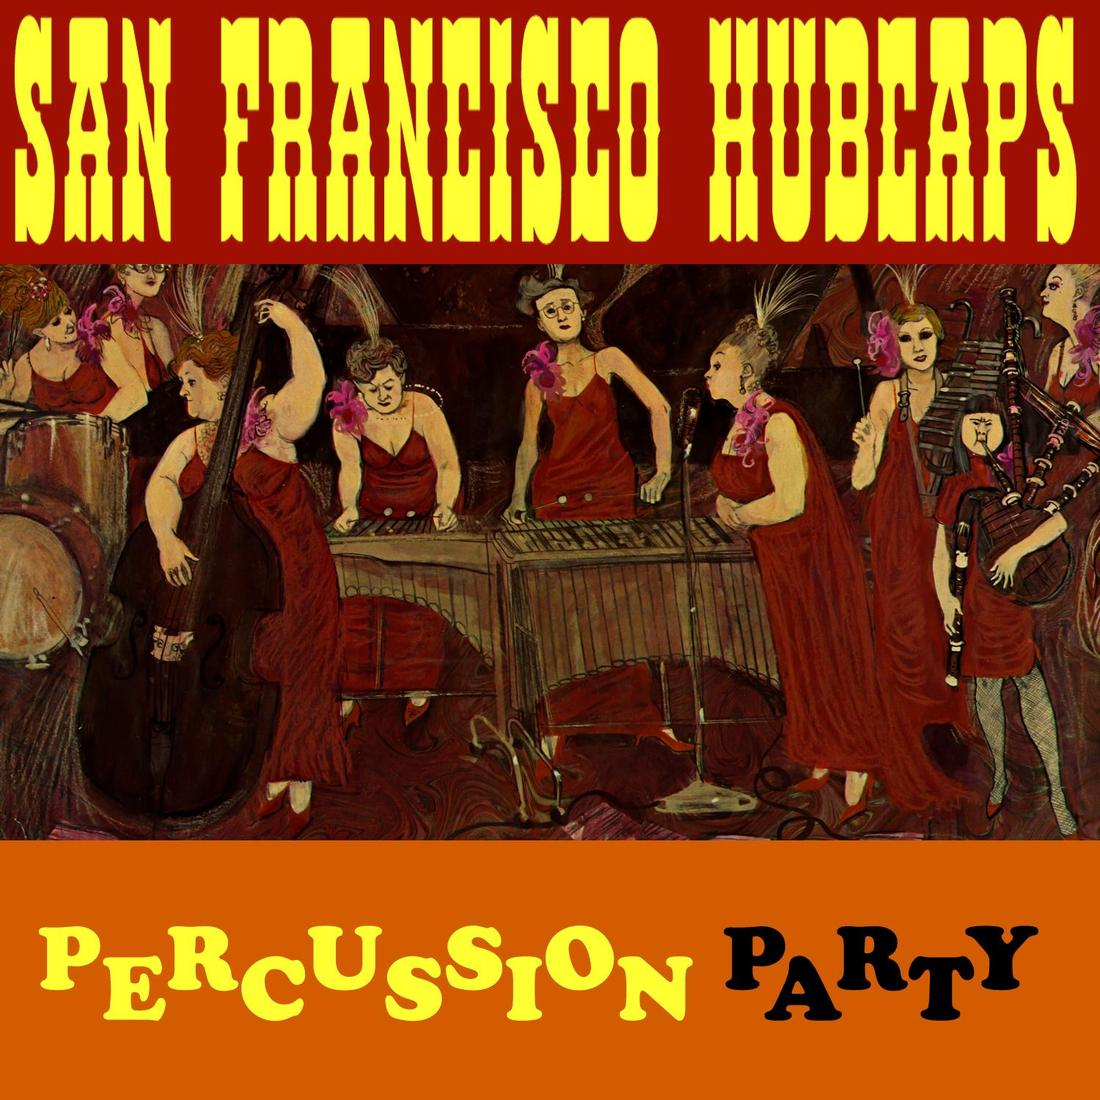 Percussion Party - The San Francisco Hubcaps - 专辑 - 网易云音乐